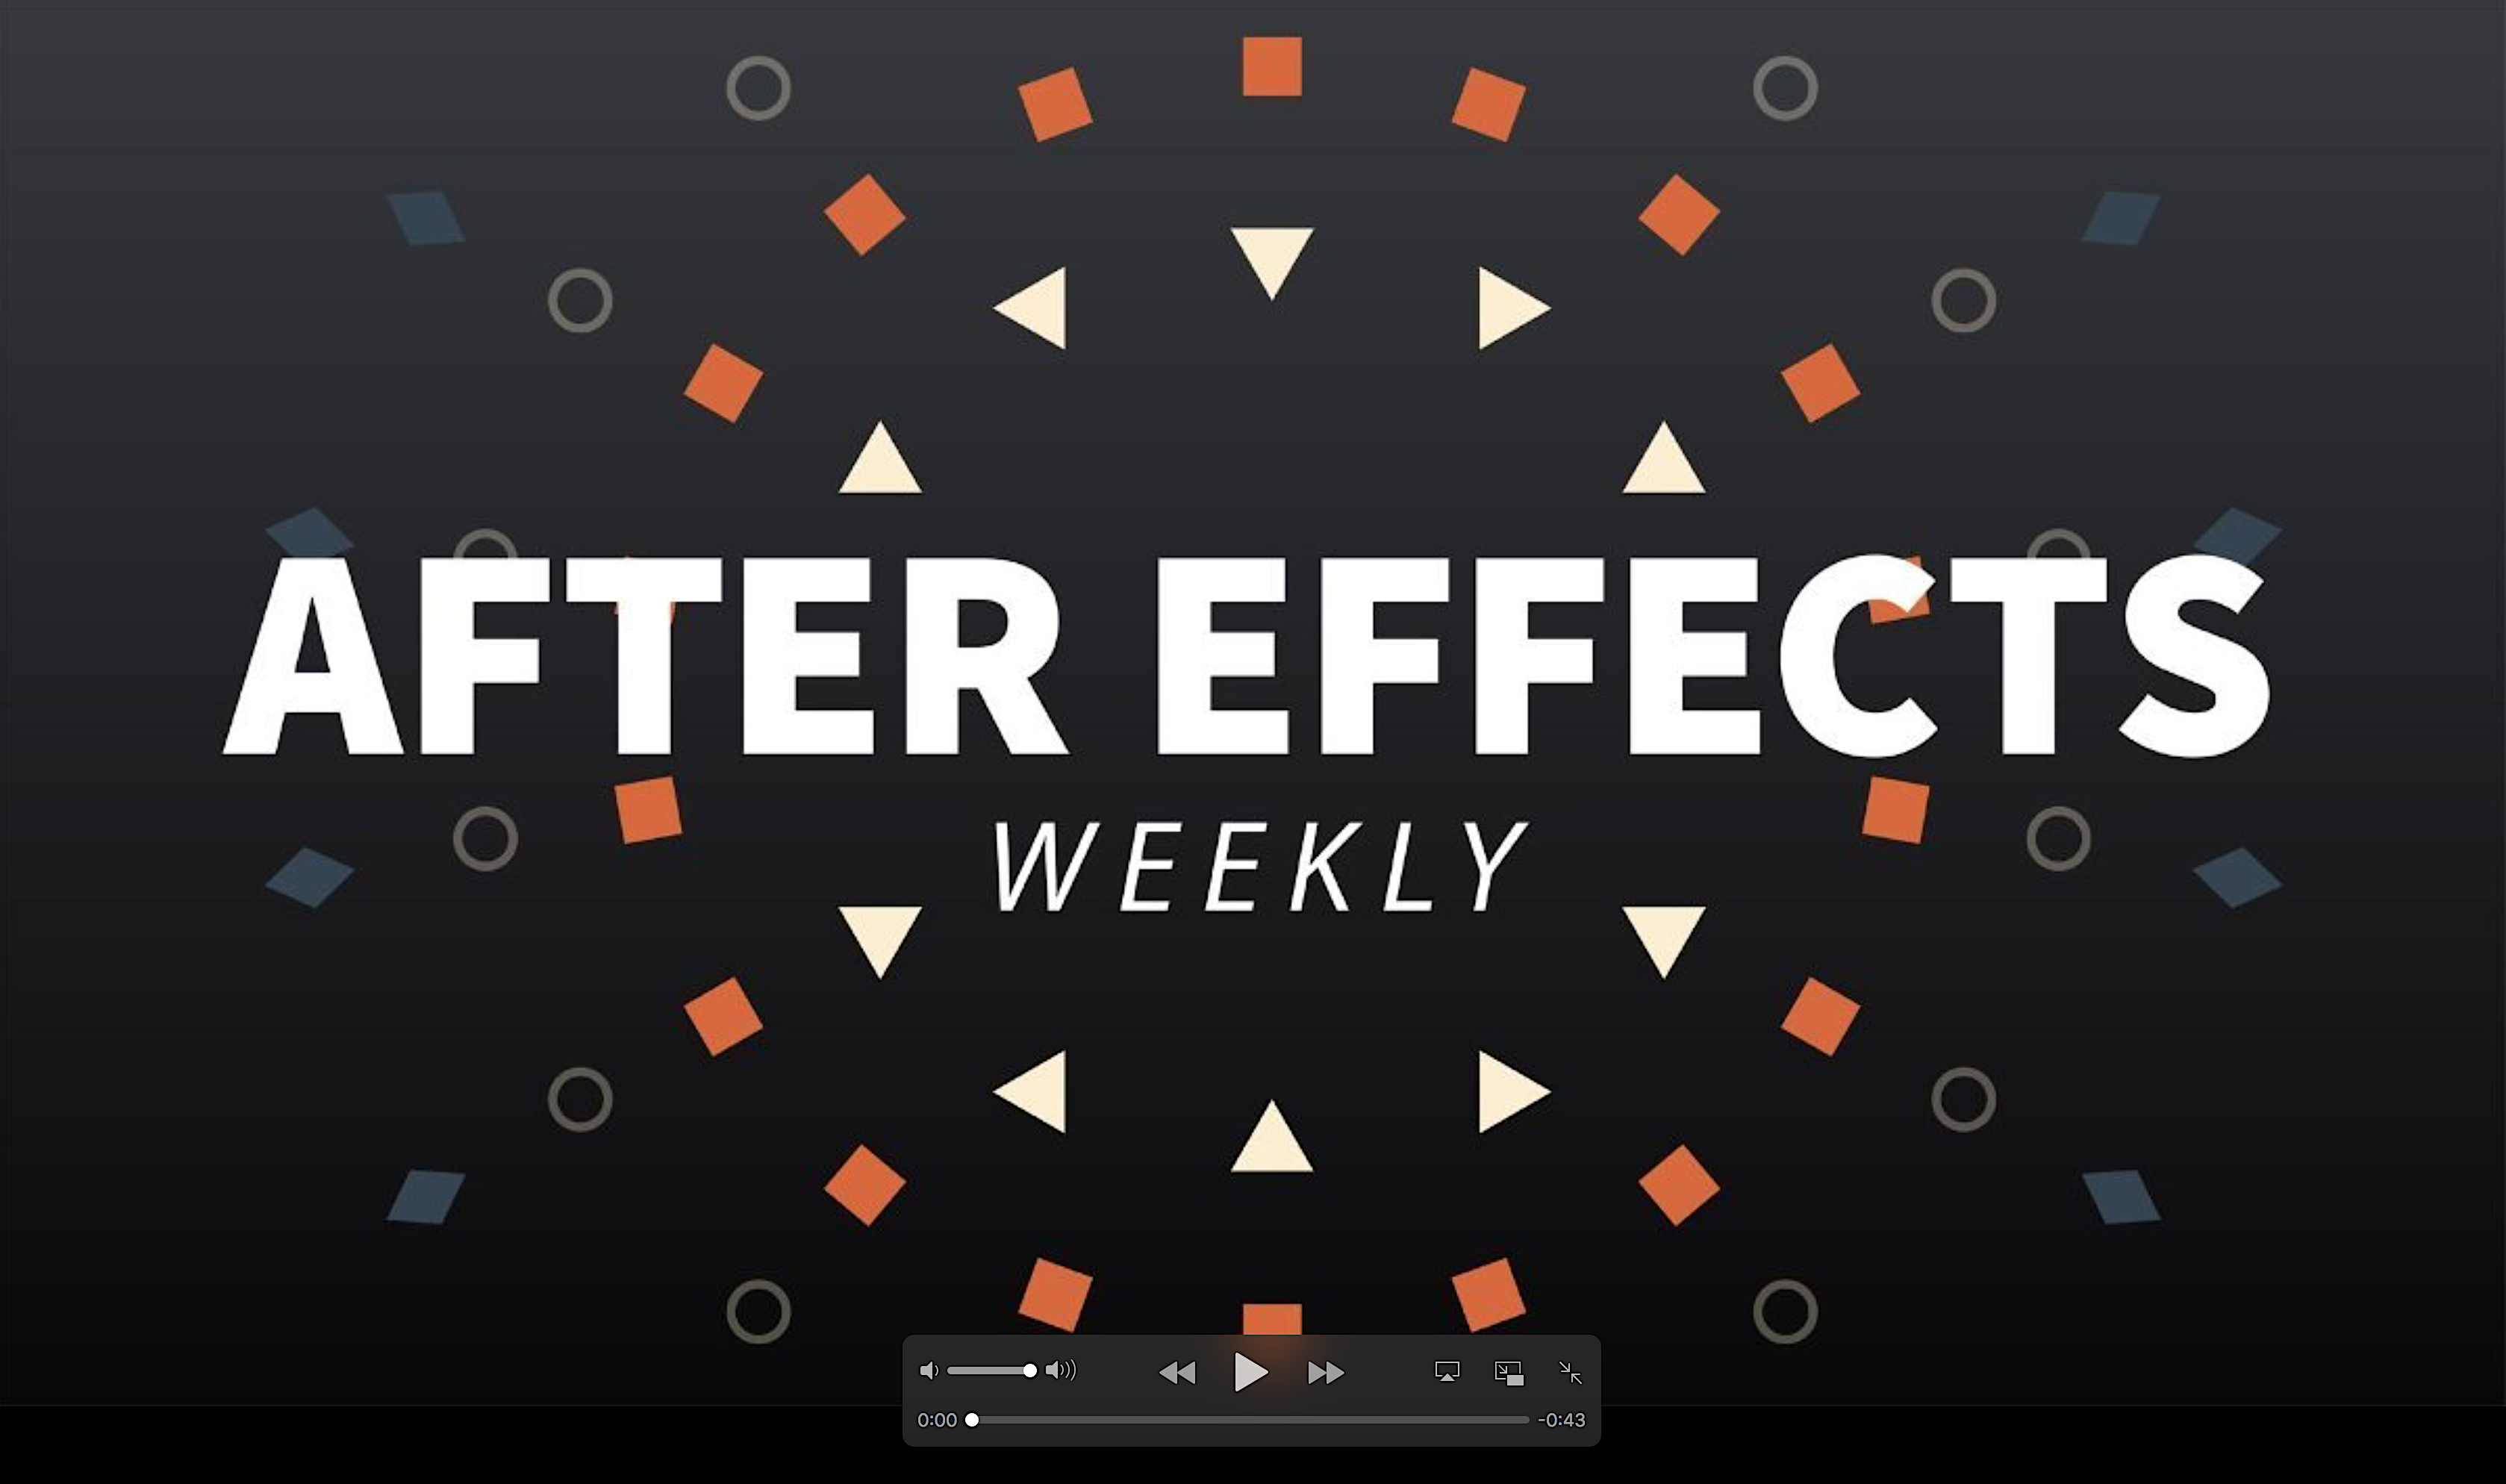 After Effects News roundup 2018 October #1